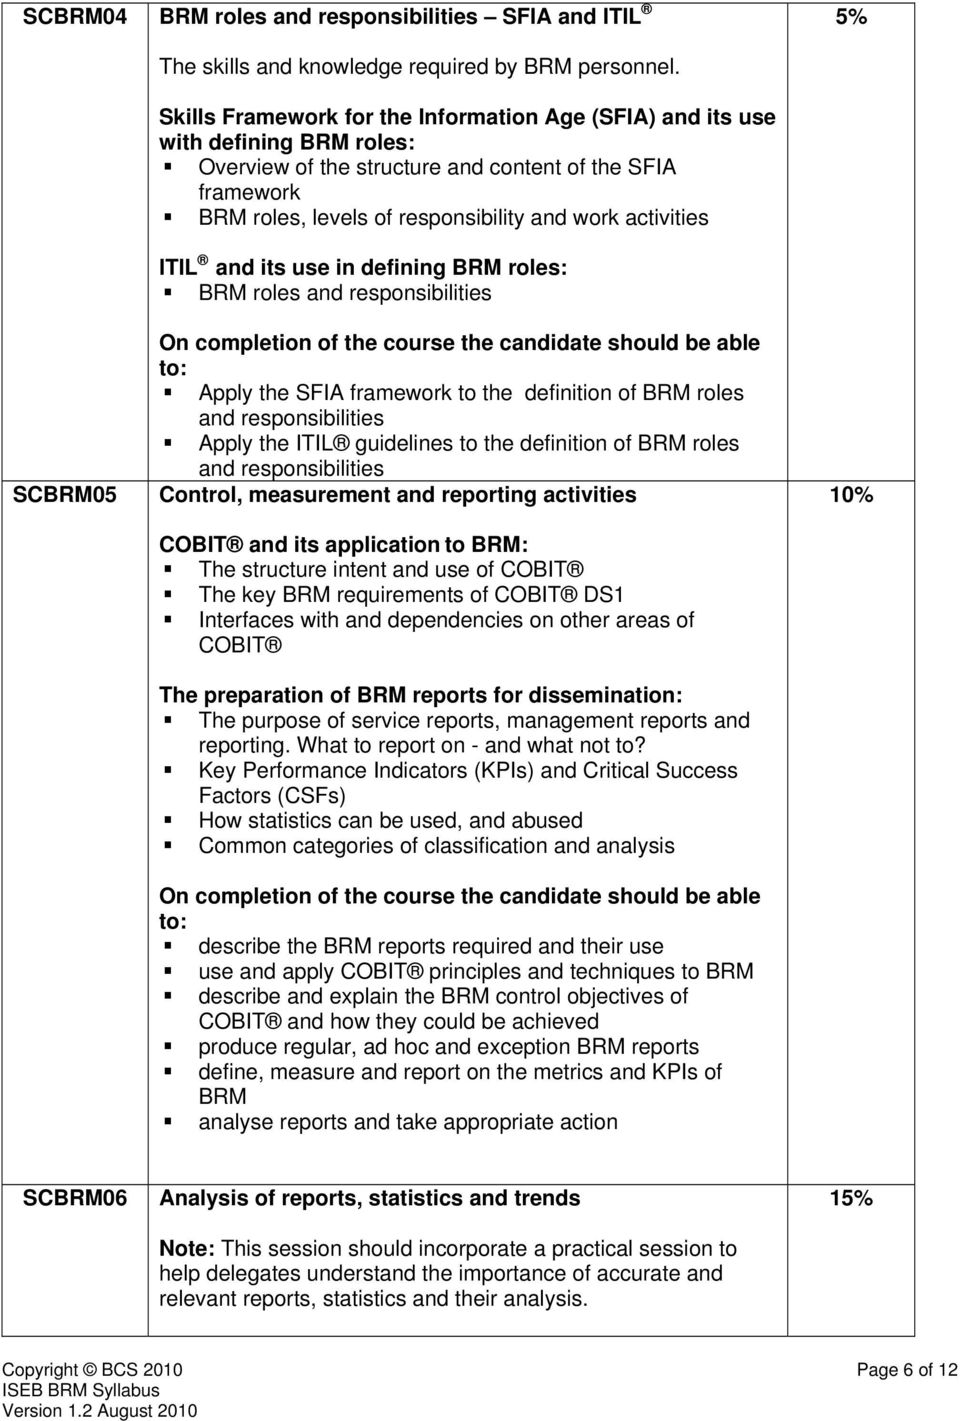 activities ITIL and its use in defining BRM roles: BRM roles and responsibilities to: Apply the SFIA framework to the definition of BRM roles and responsibilities Apply the ITIL guidelines to the